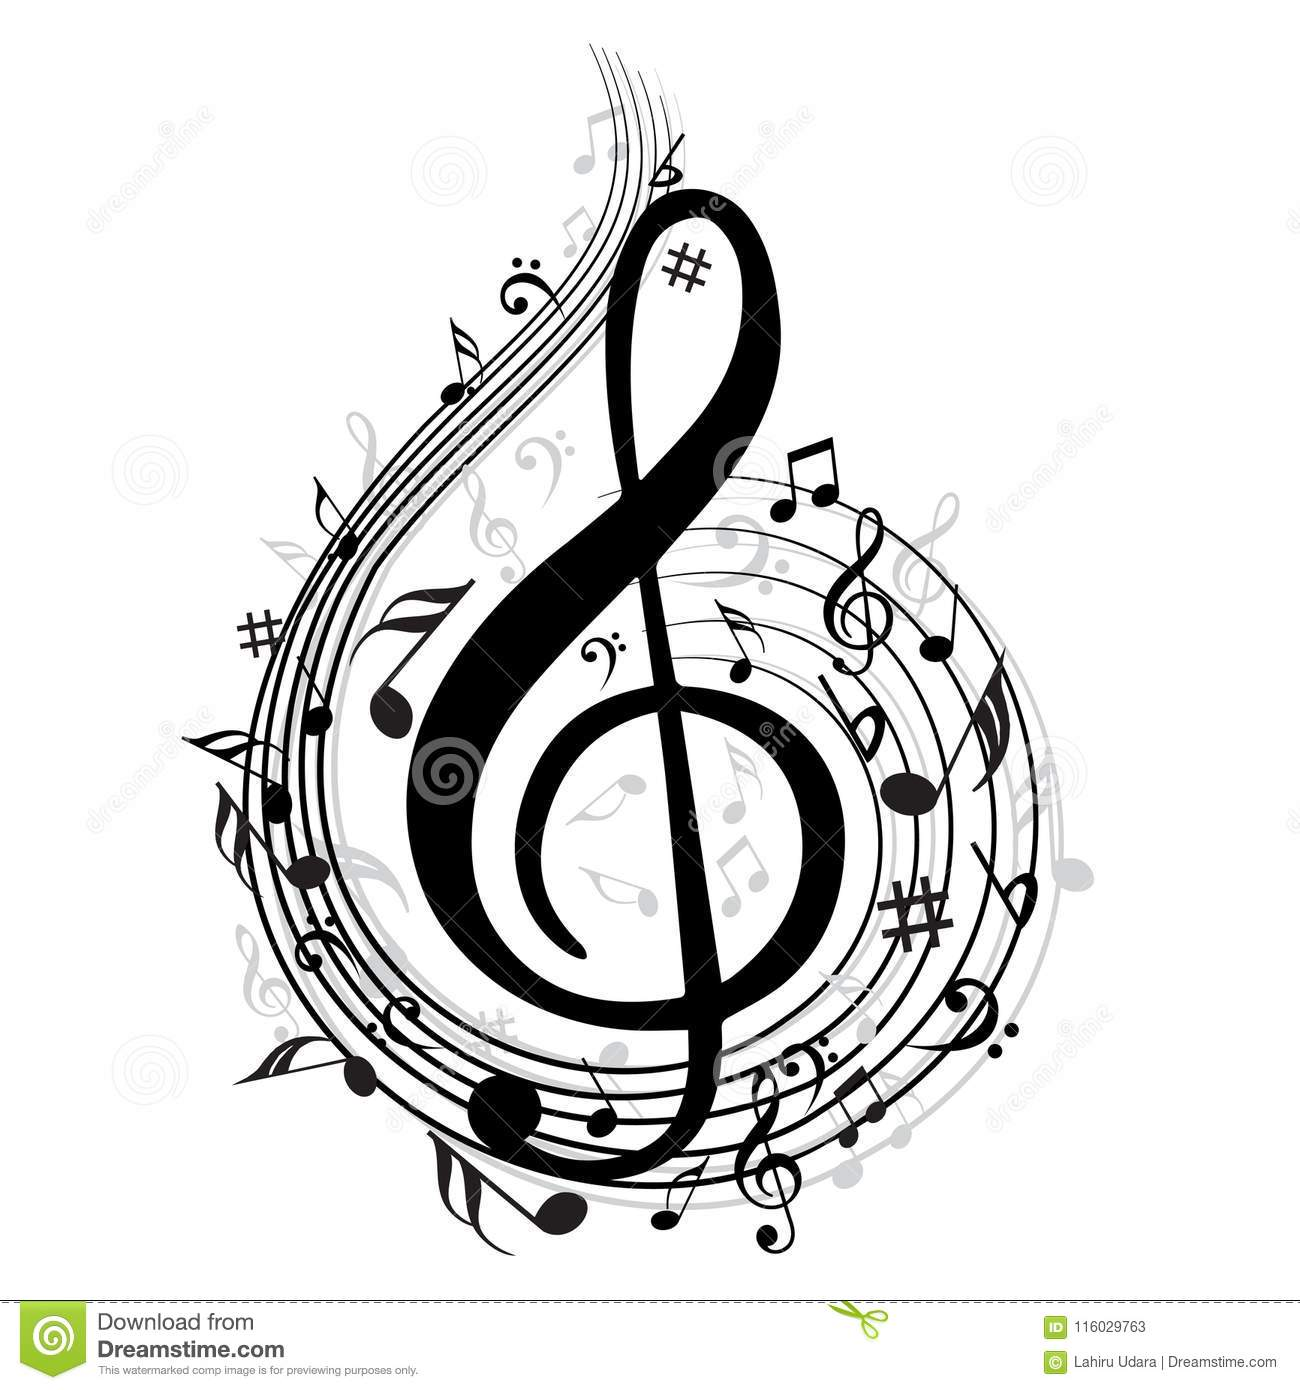 Music Note Background With Symbols Stock Vector - Illustration of